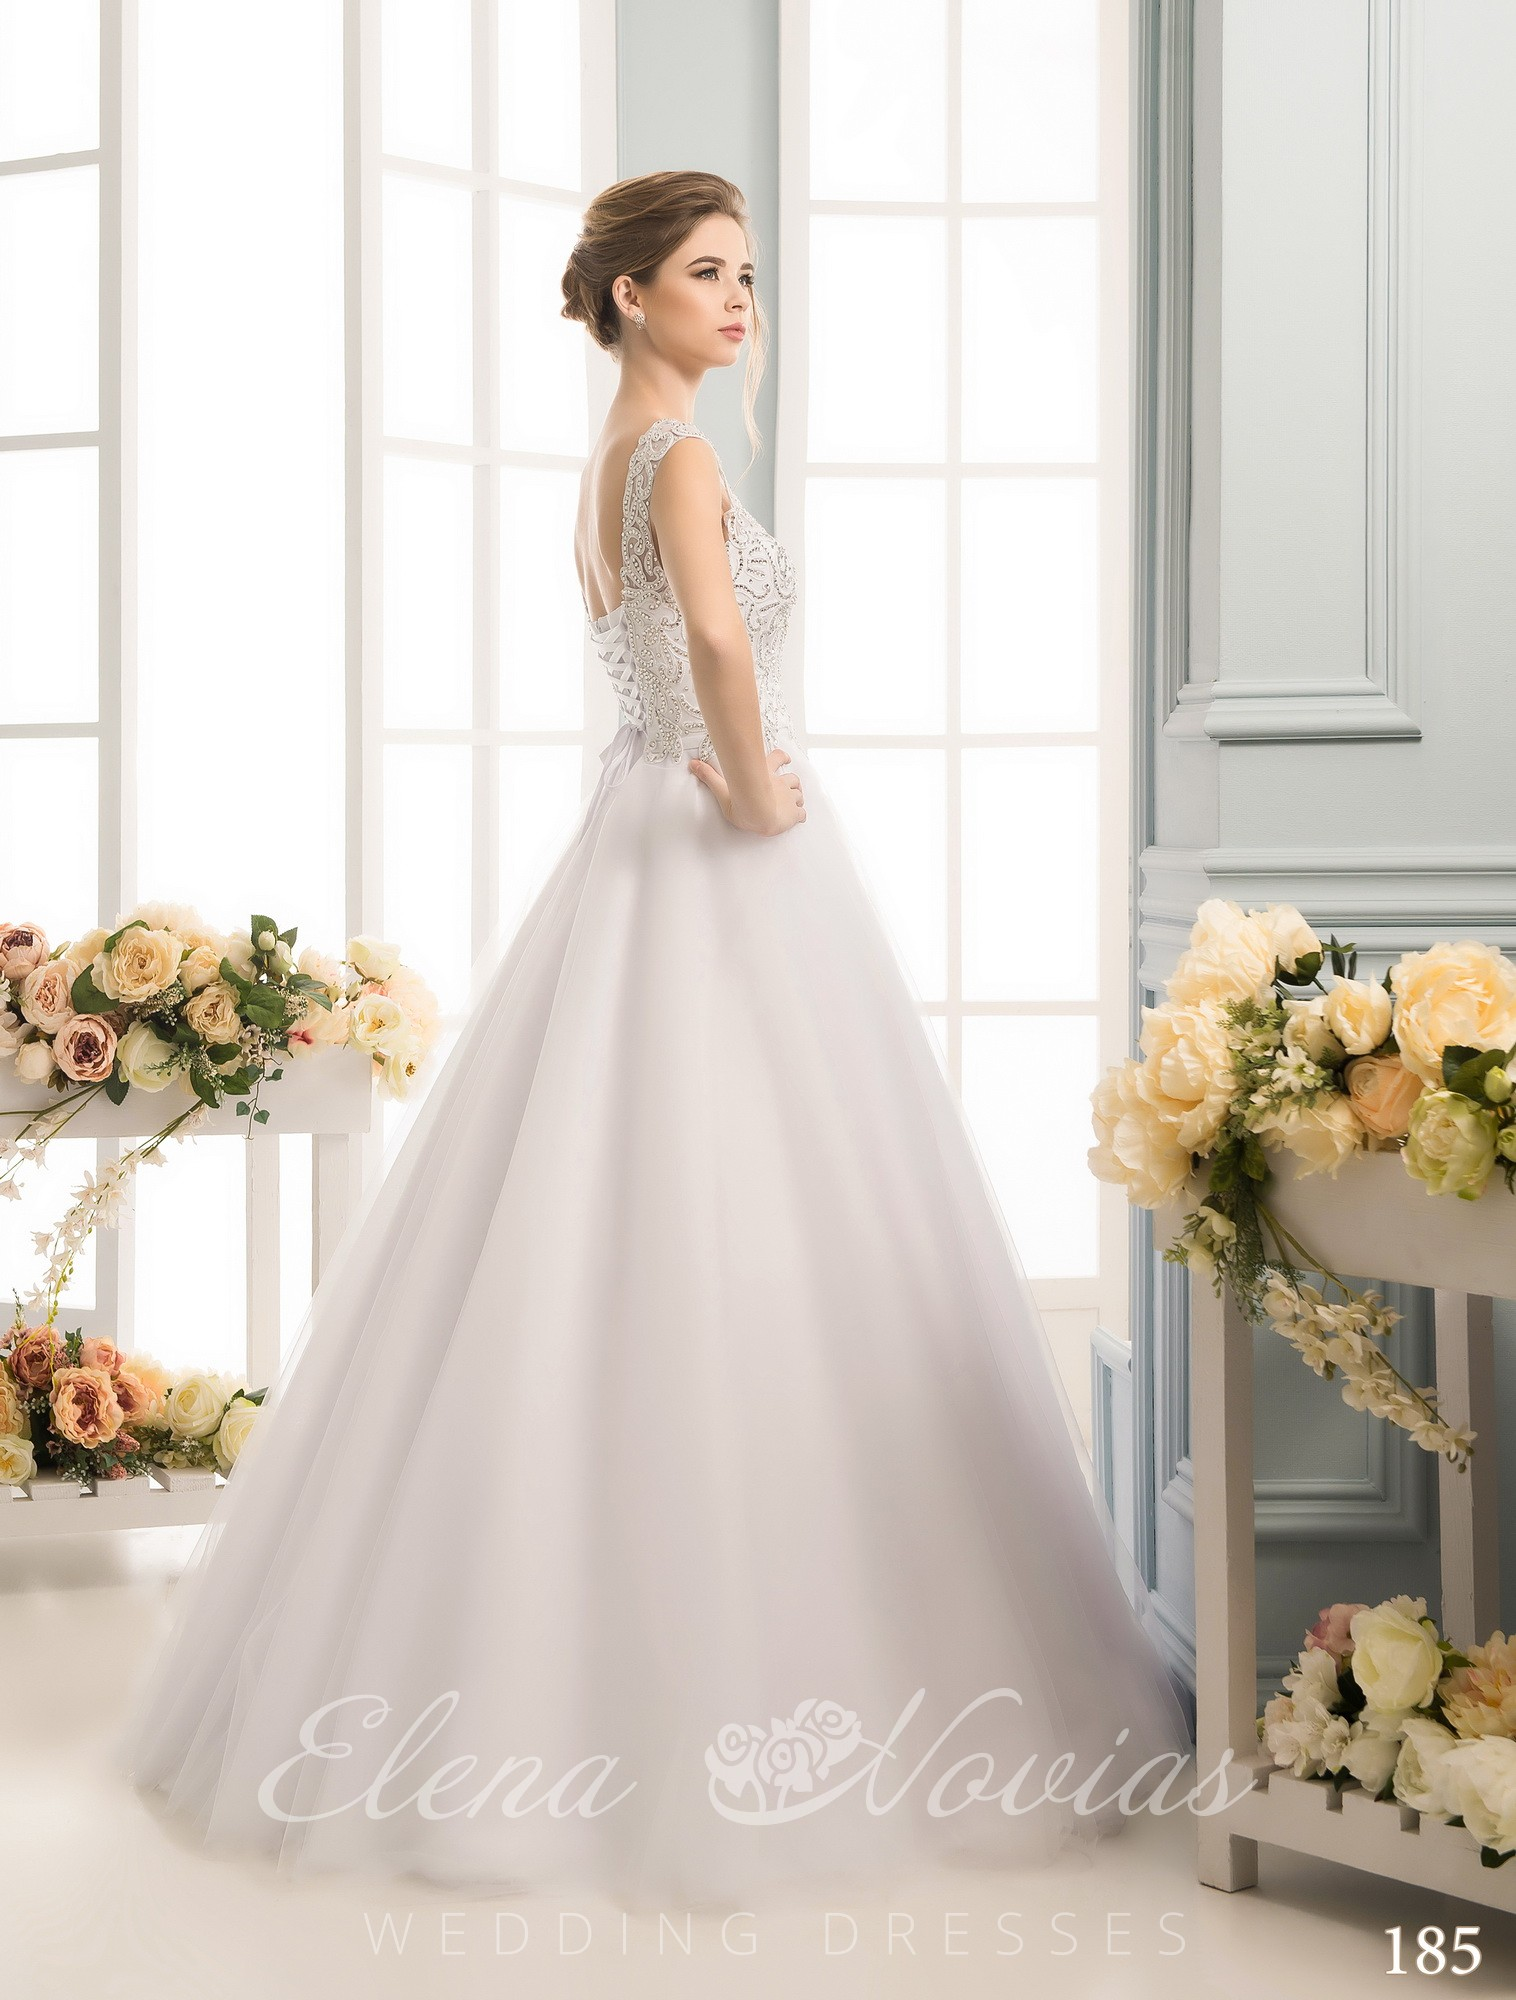 Wedding dress wholesale 185